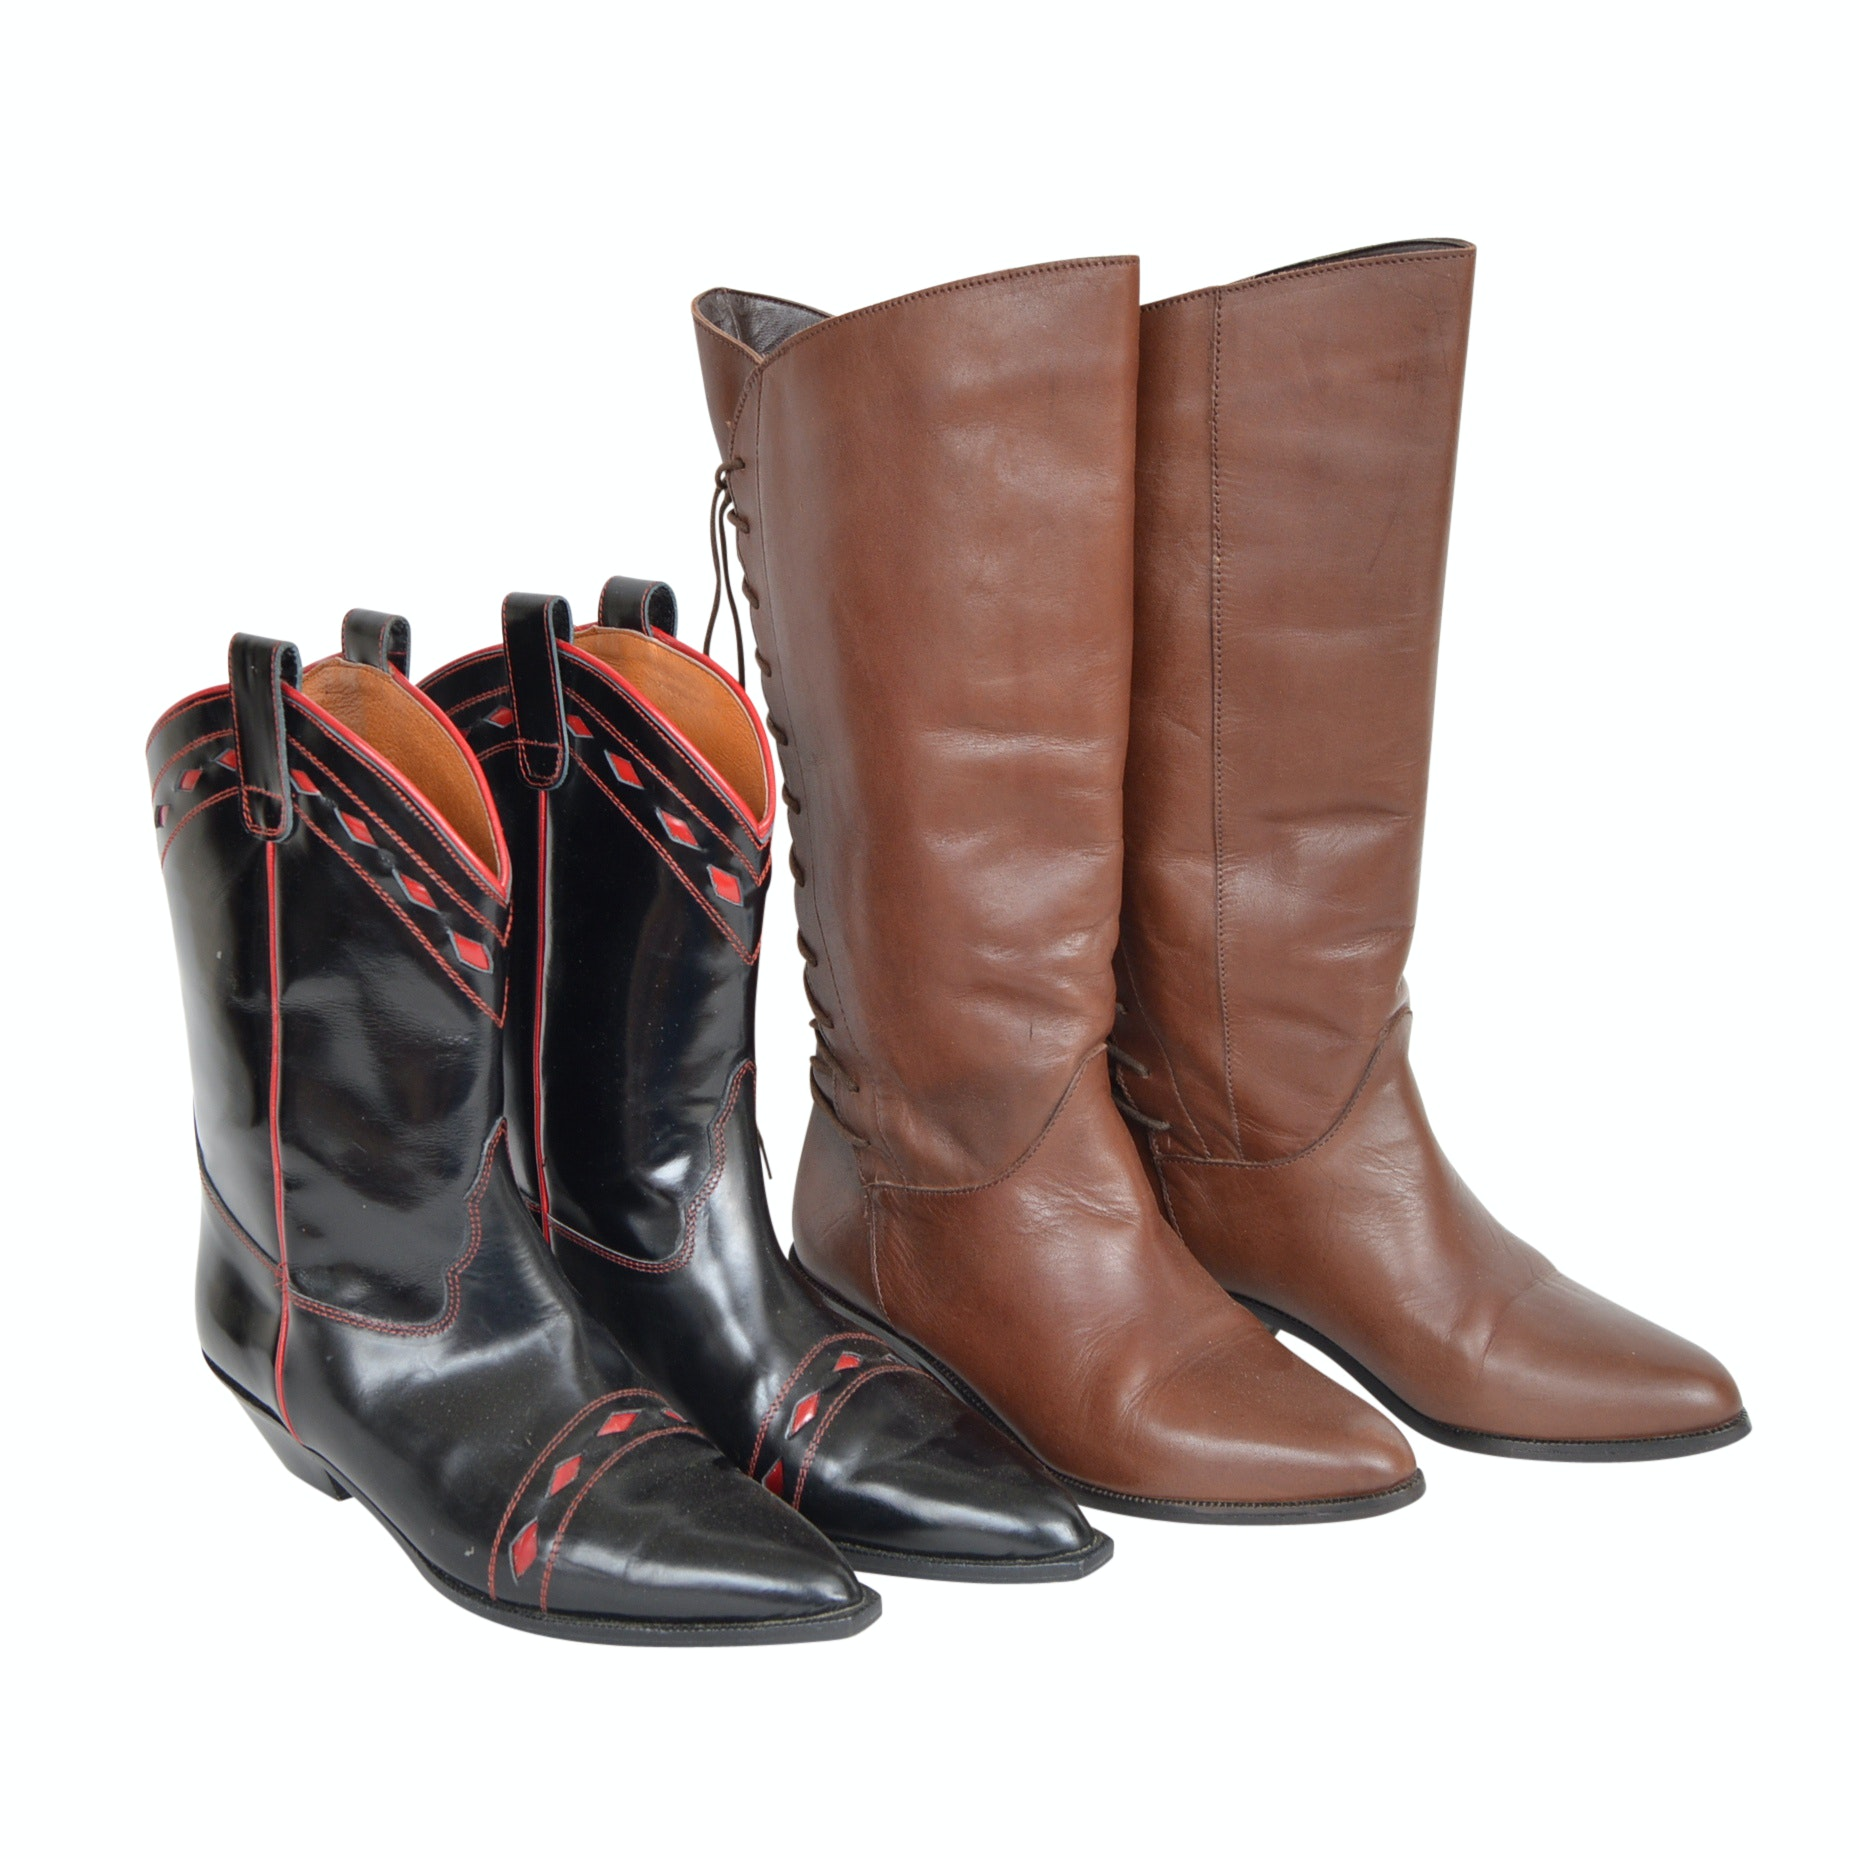 Women's Donald J Pliner and White Mountain Boots